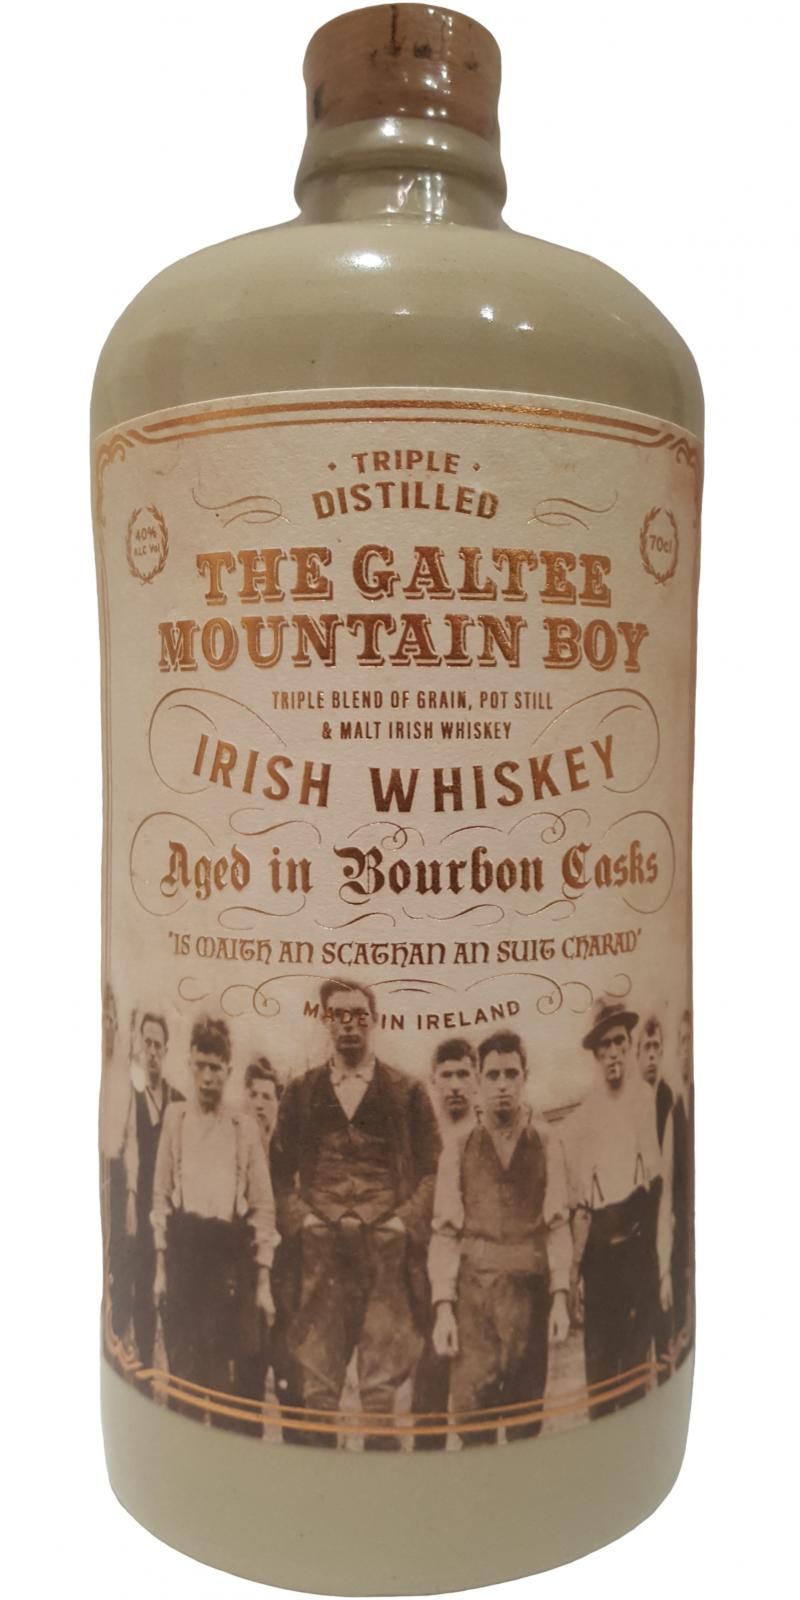 The Galtee Mountain Boy Aged in Bournon Casks 70cl Whiskey